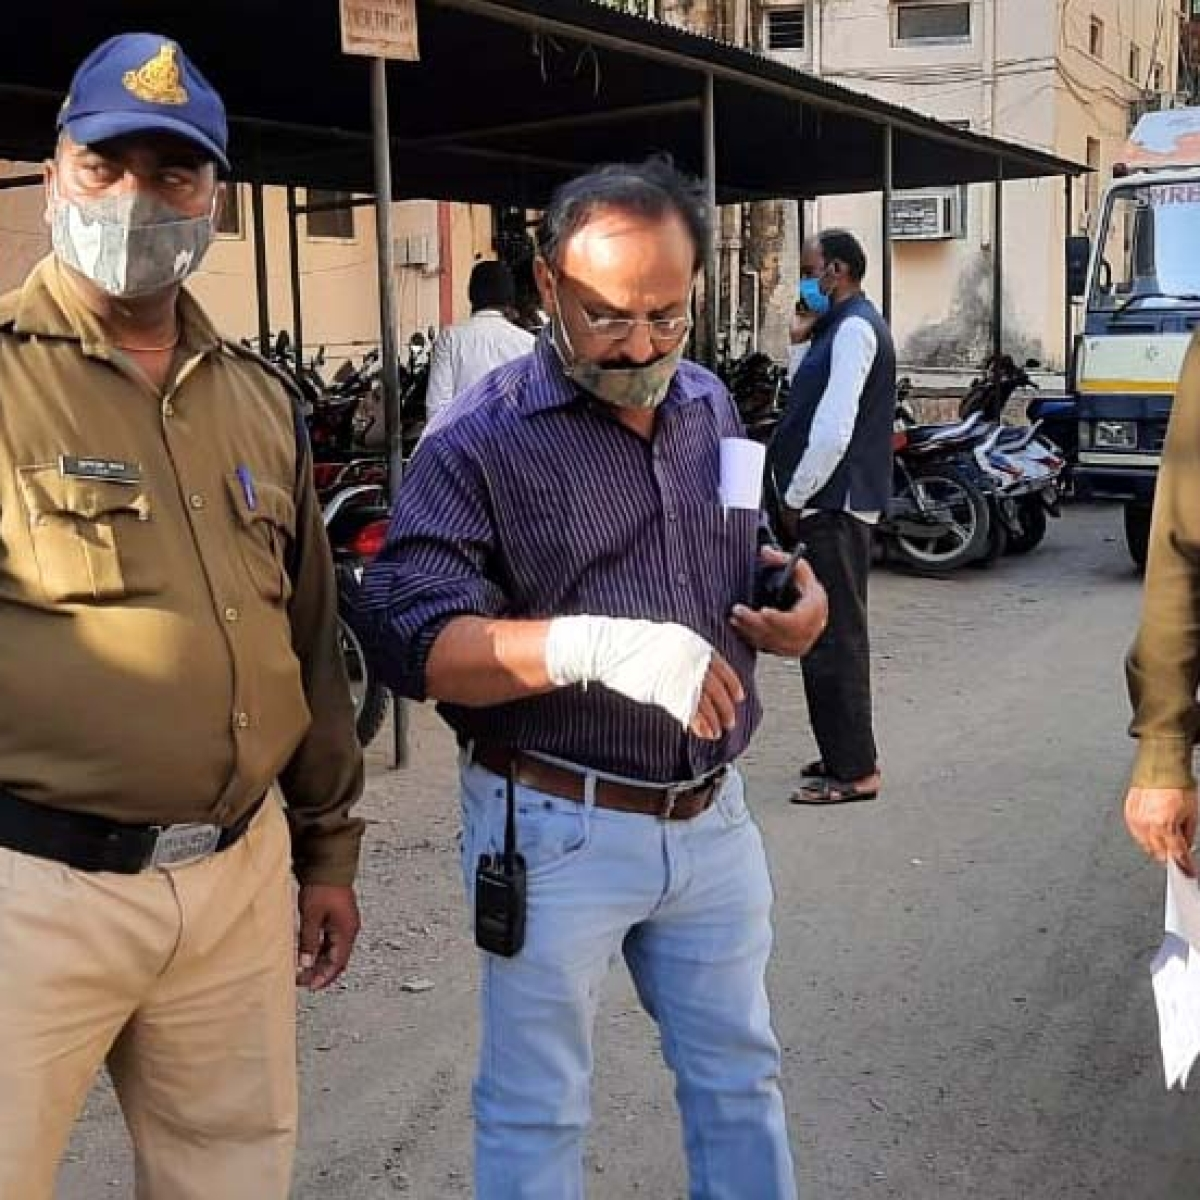 Bhopal: BMC team attacked for removing encroachments, officer injured